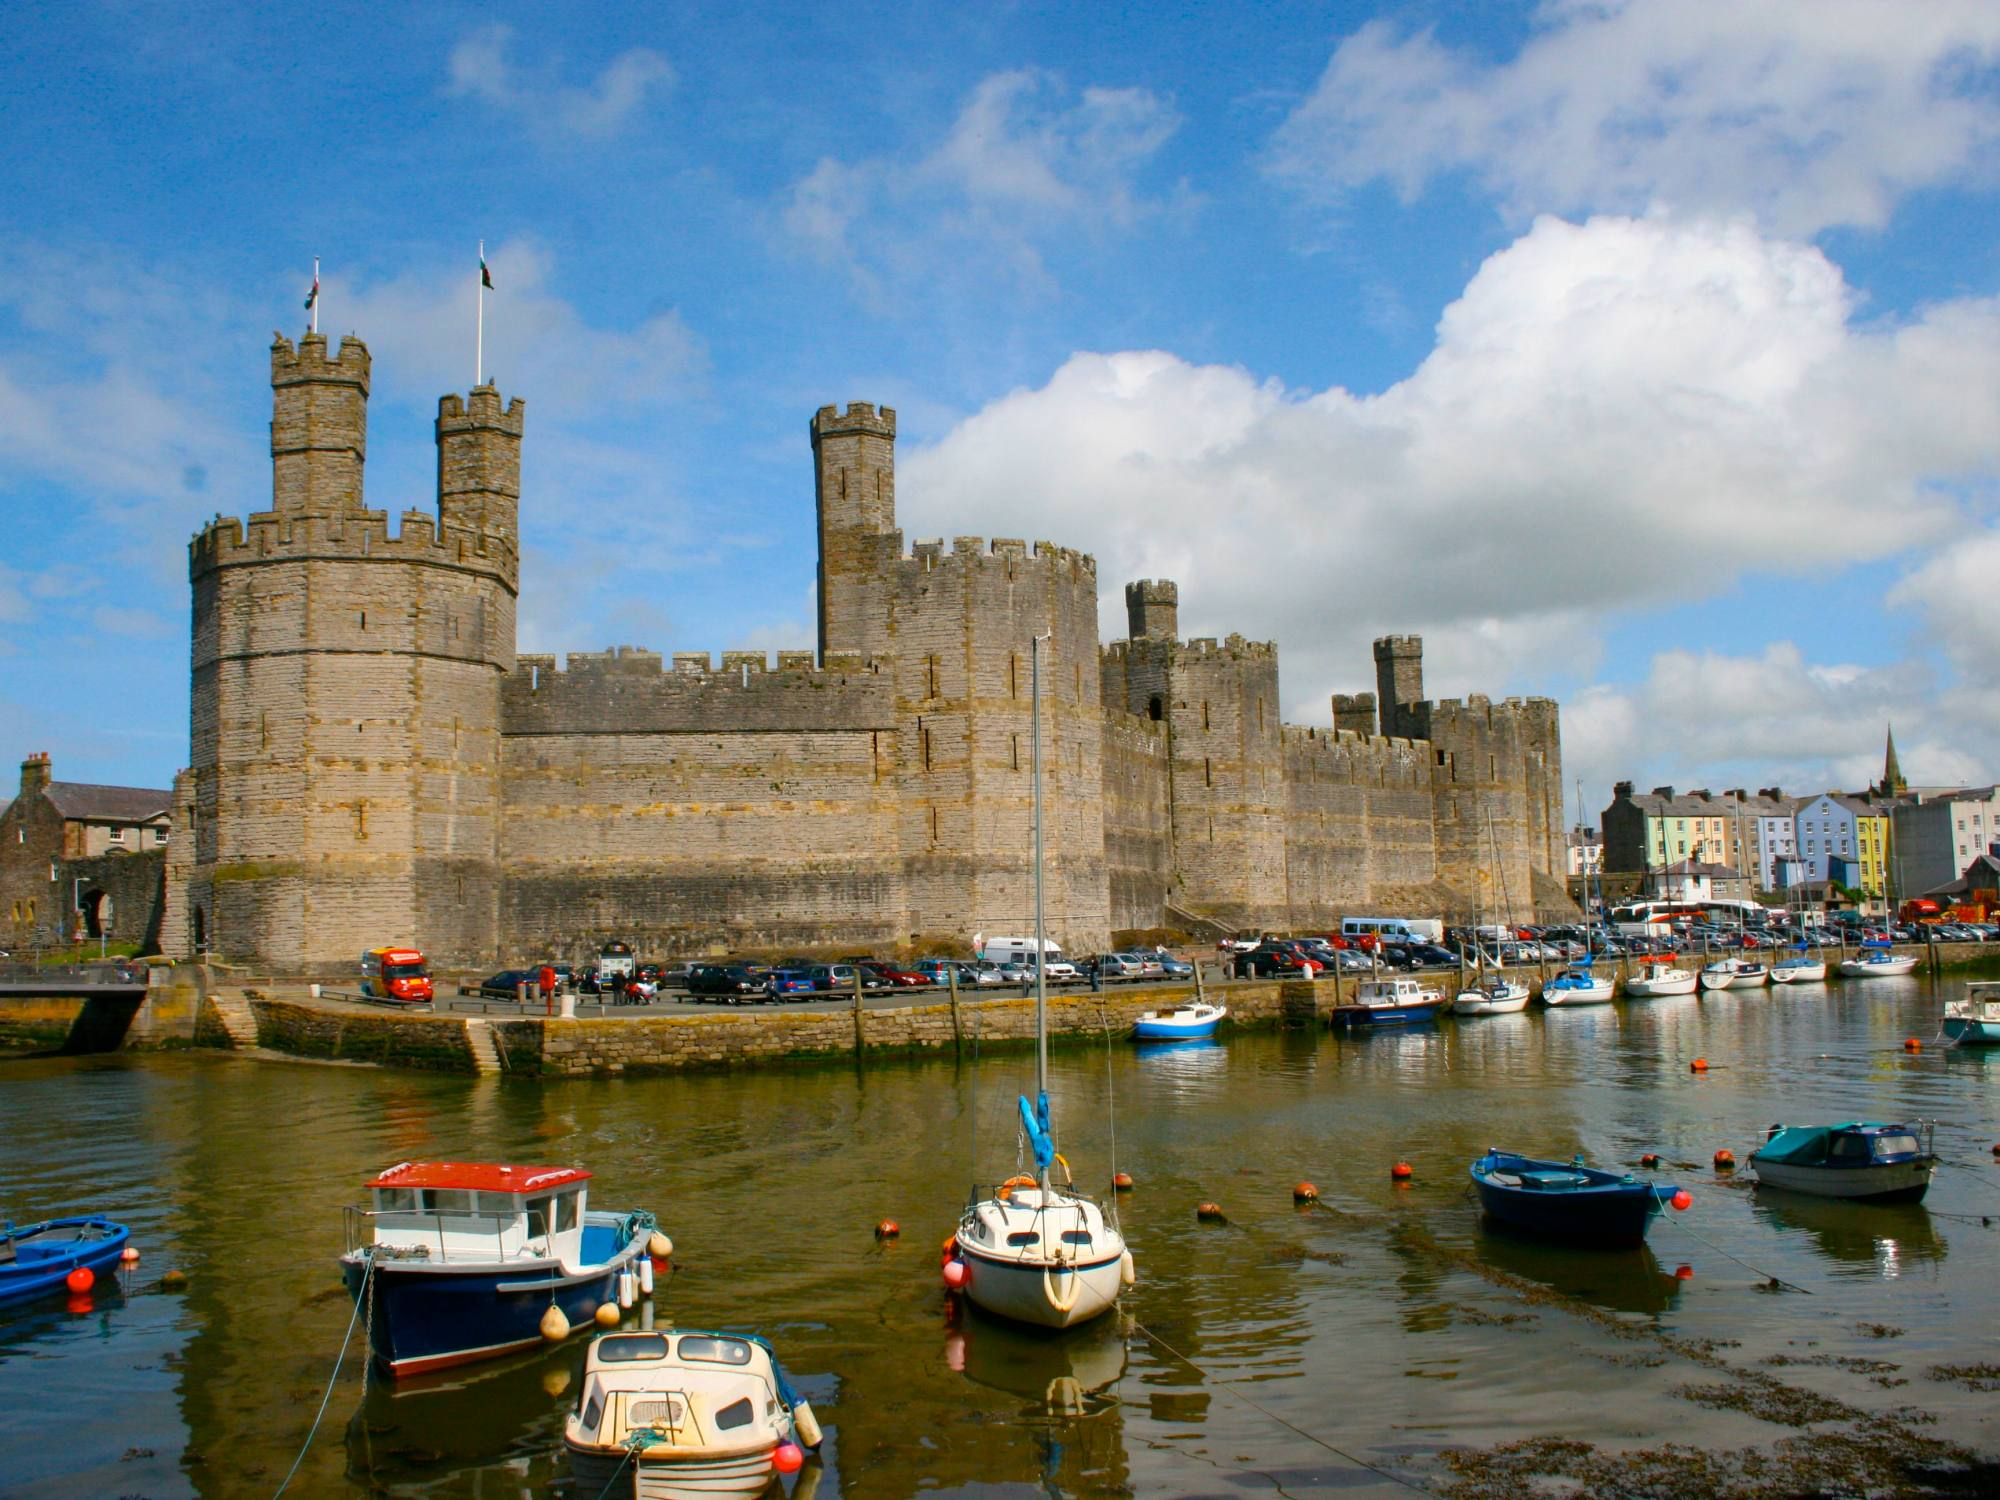 travel photography, Wales photography, castles of wales, Caernarfon Castle, travel photos